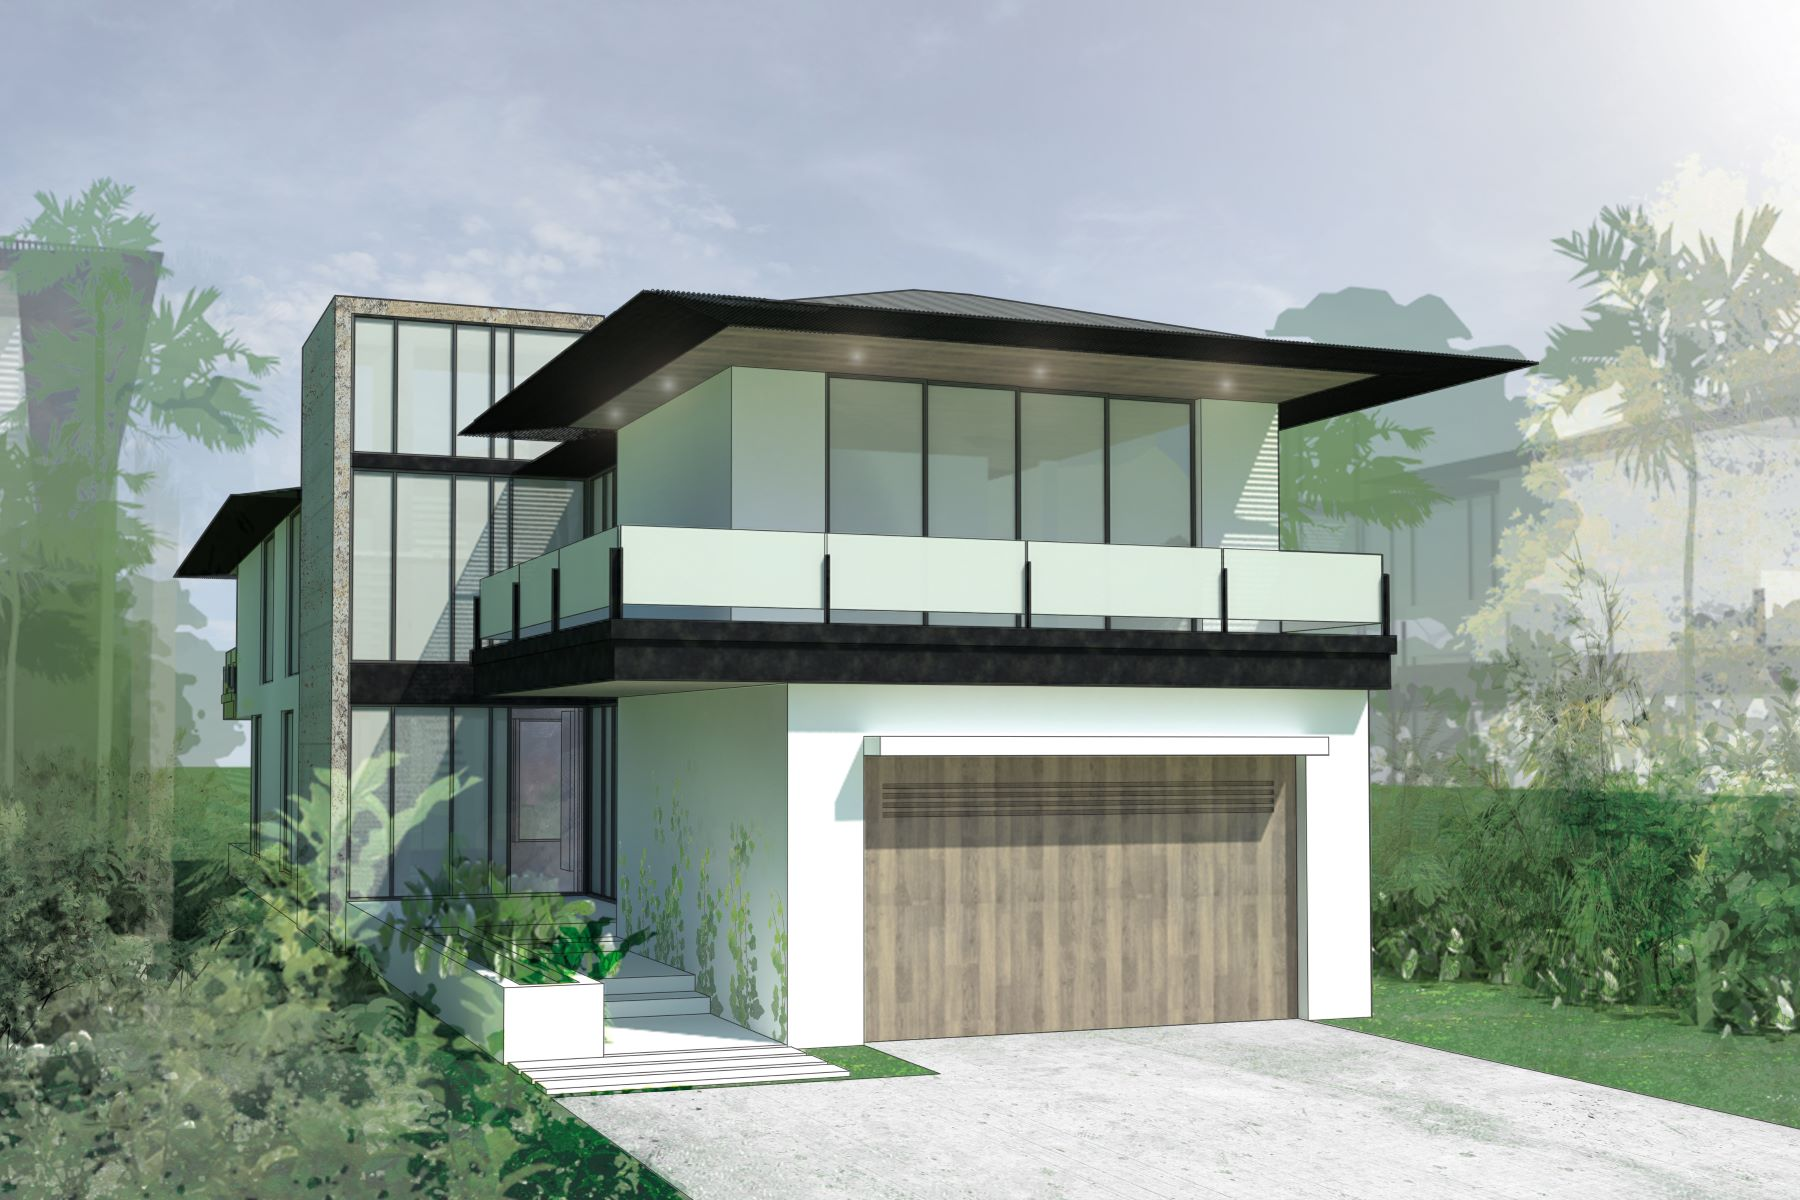 Property для того Продажа на Direct Riverfront New Construction 4844 S Harbor Drive Vero Beach, Флорида 32967 Соединенные Штаты